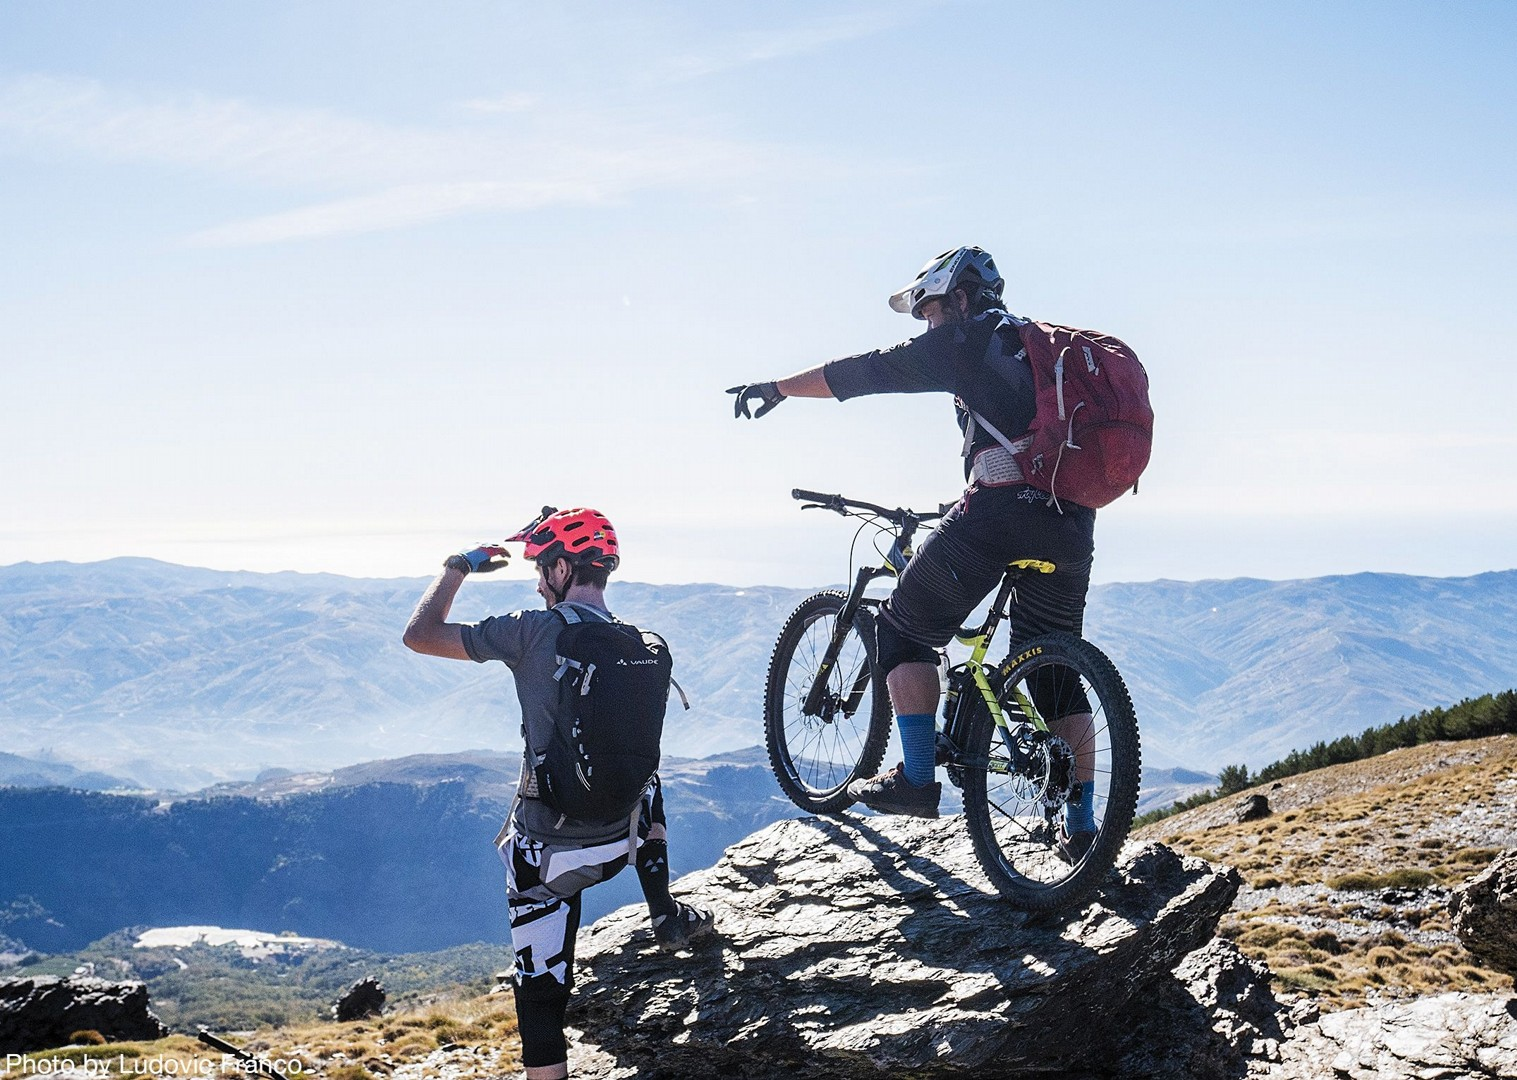 mountain-biking-holiday-in-spain-sierra-nevada-skedaddle.jpg - Spain - Sensational Sierra Nevada - Mountain Biking